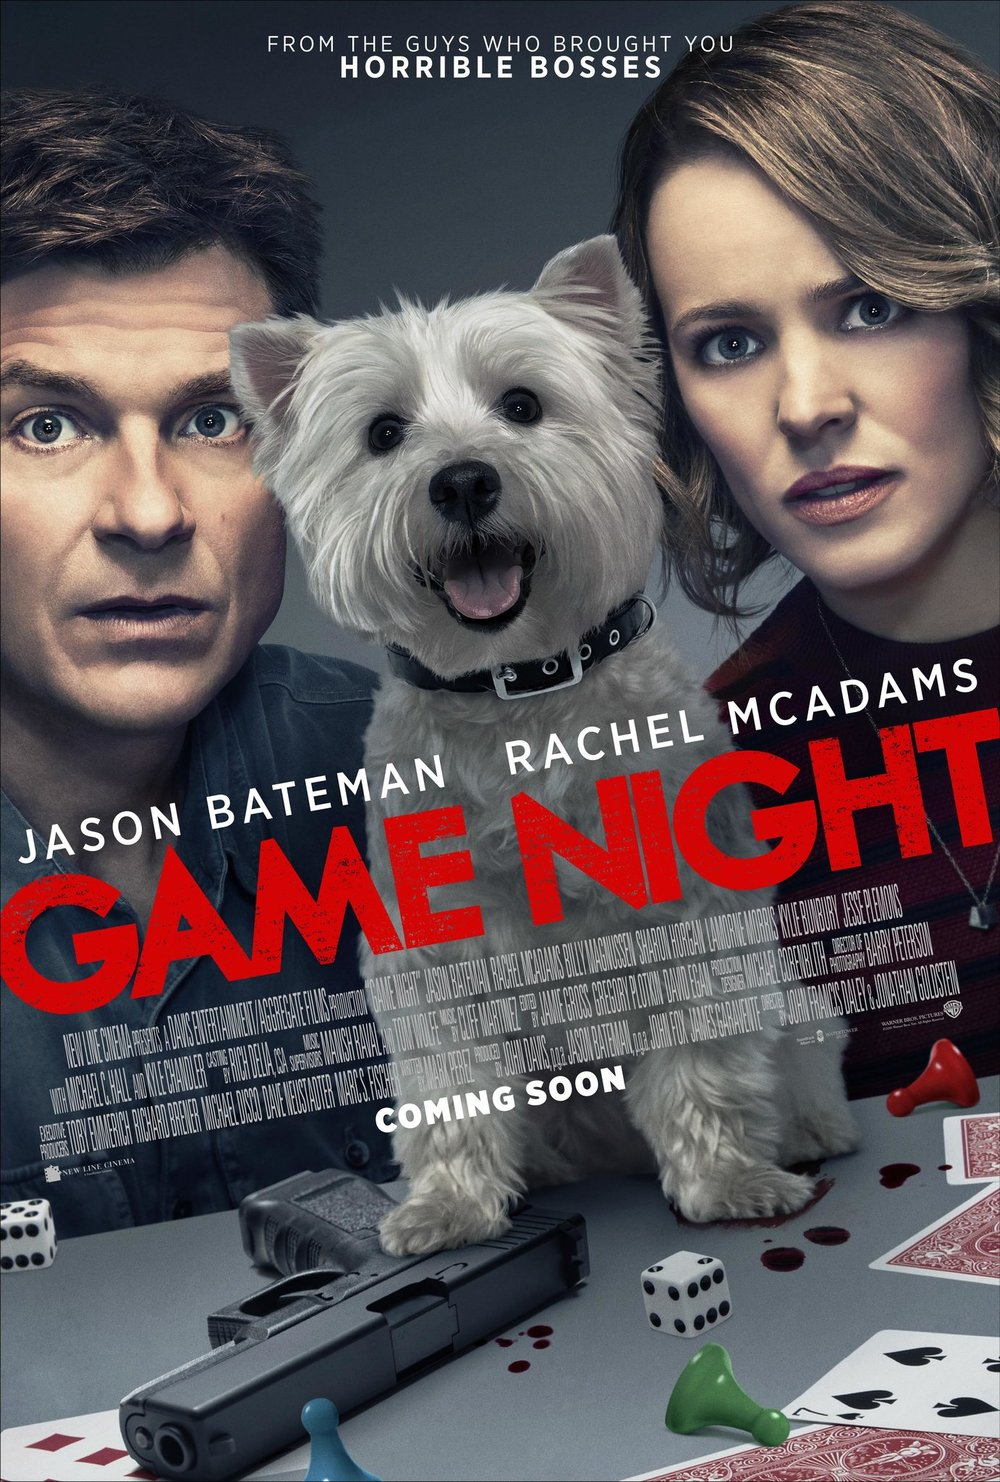 Certainly not a masterful movie, but an unexpectedly funny and twisty comedy at a time when flat-out entertainment is highly appreciated. -